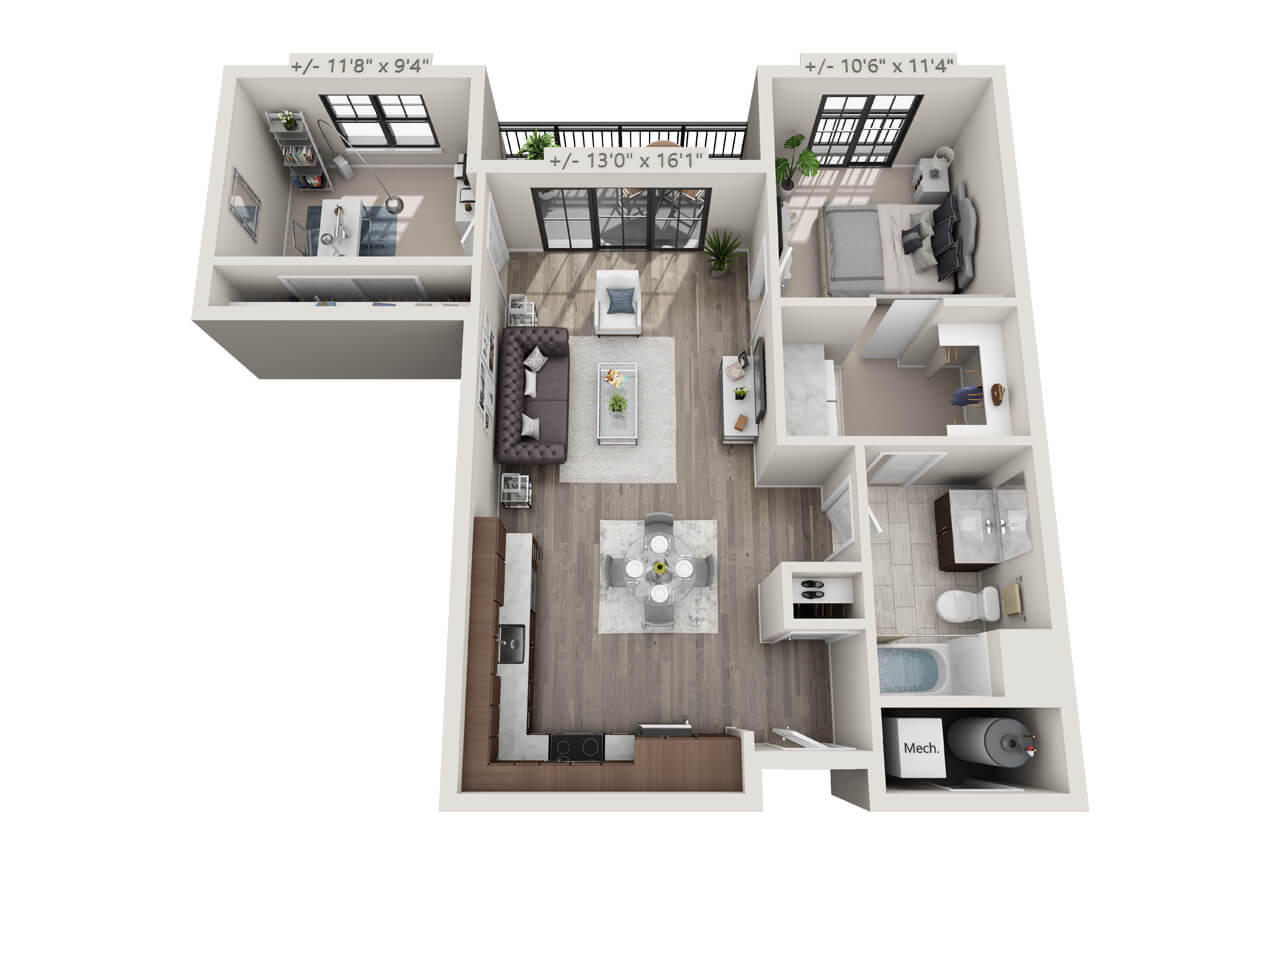 1 bedroom apartment in Troy NY, floorplan, Starbuck Luxury apartments